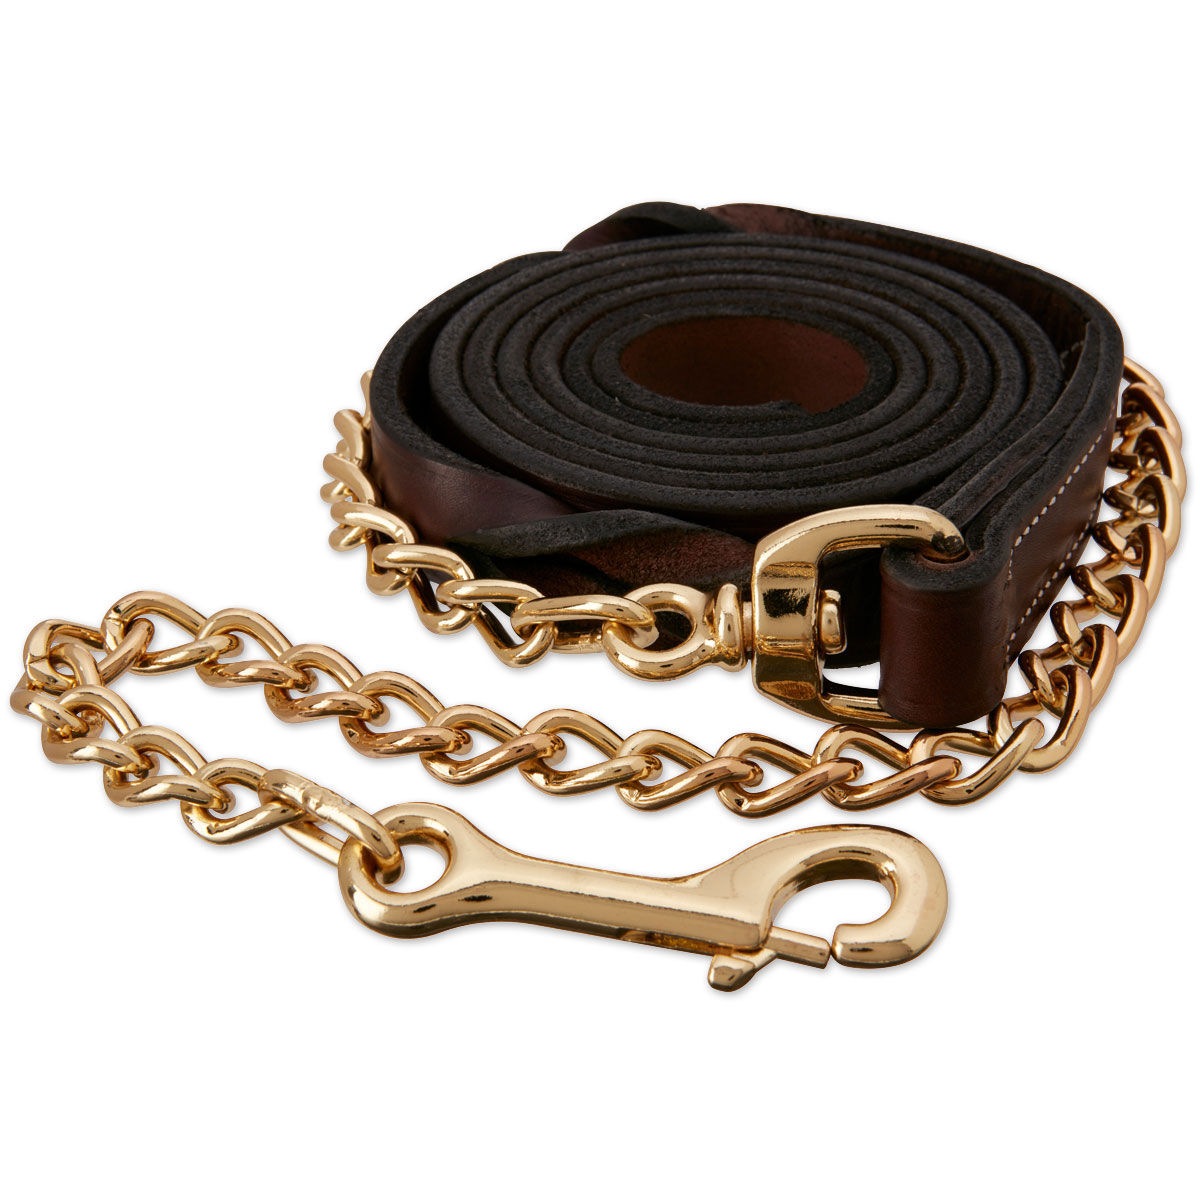 Walsh Leather Lead with 24 Chain Havana